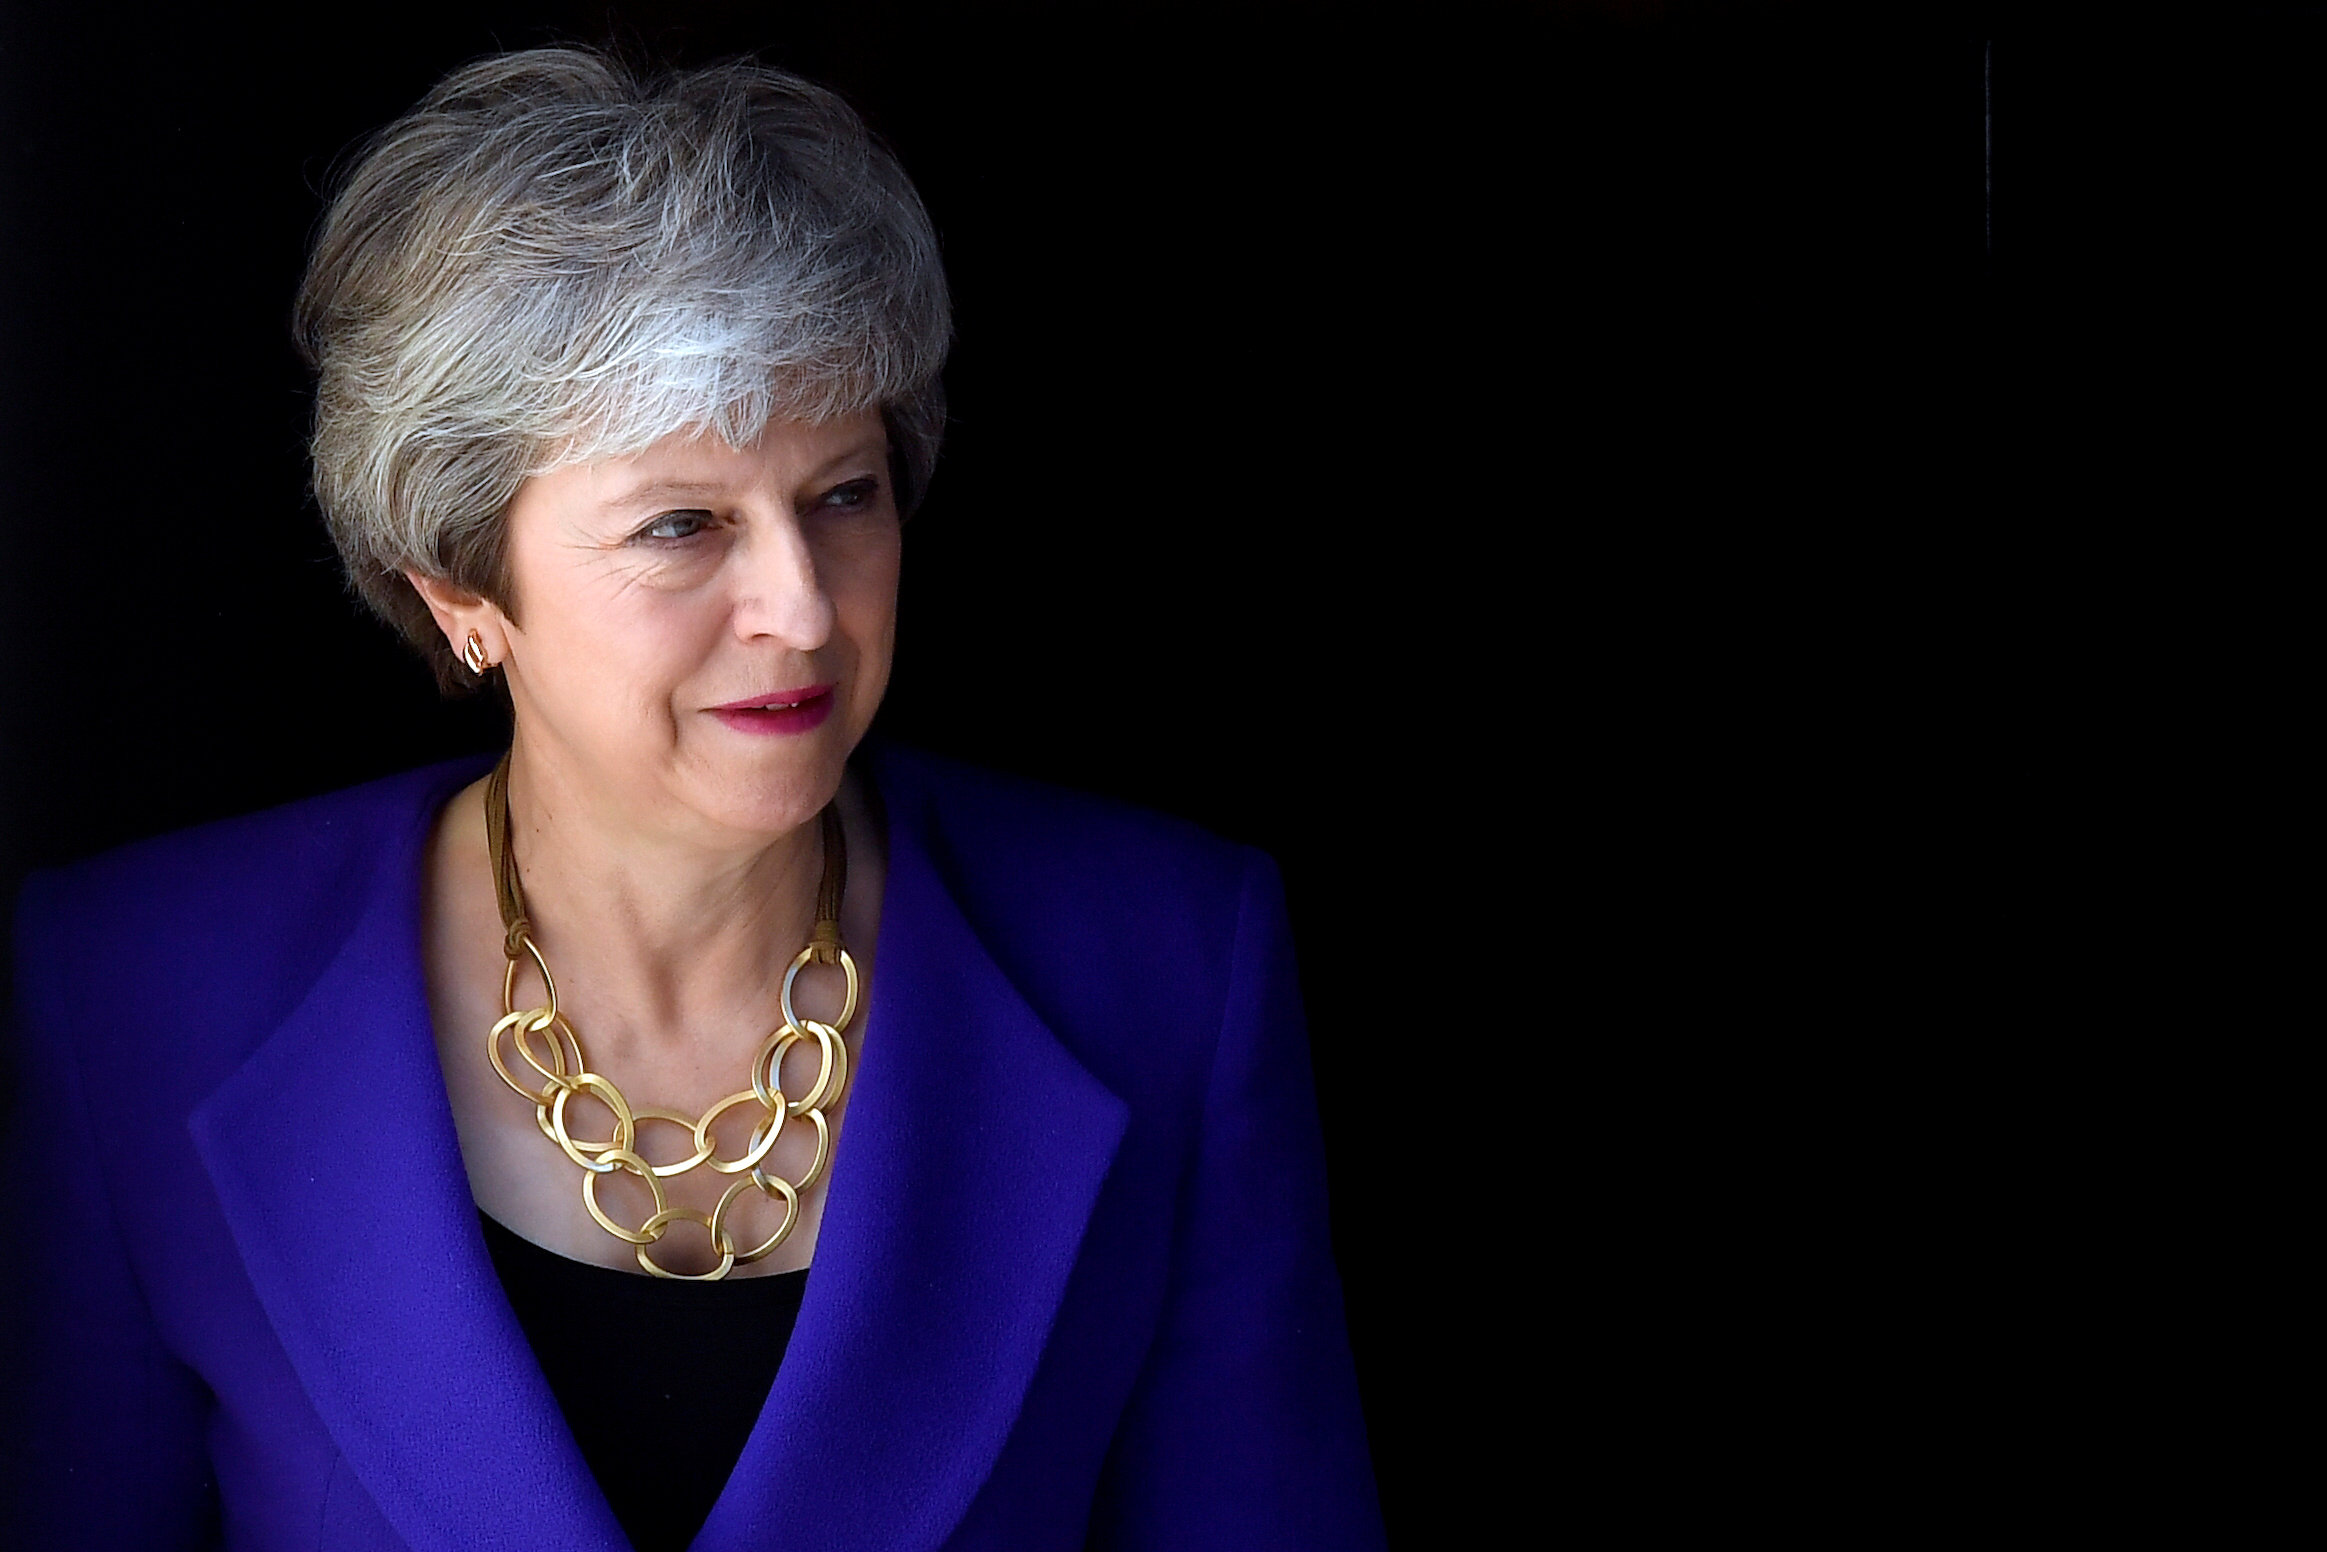 Brexit fallout: Prime minister Theresa May's Conservative Party has suffered losses in the local elections across England